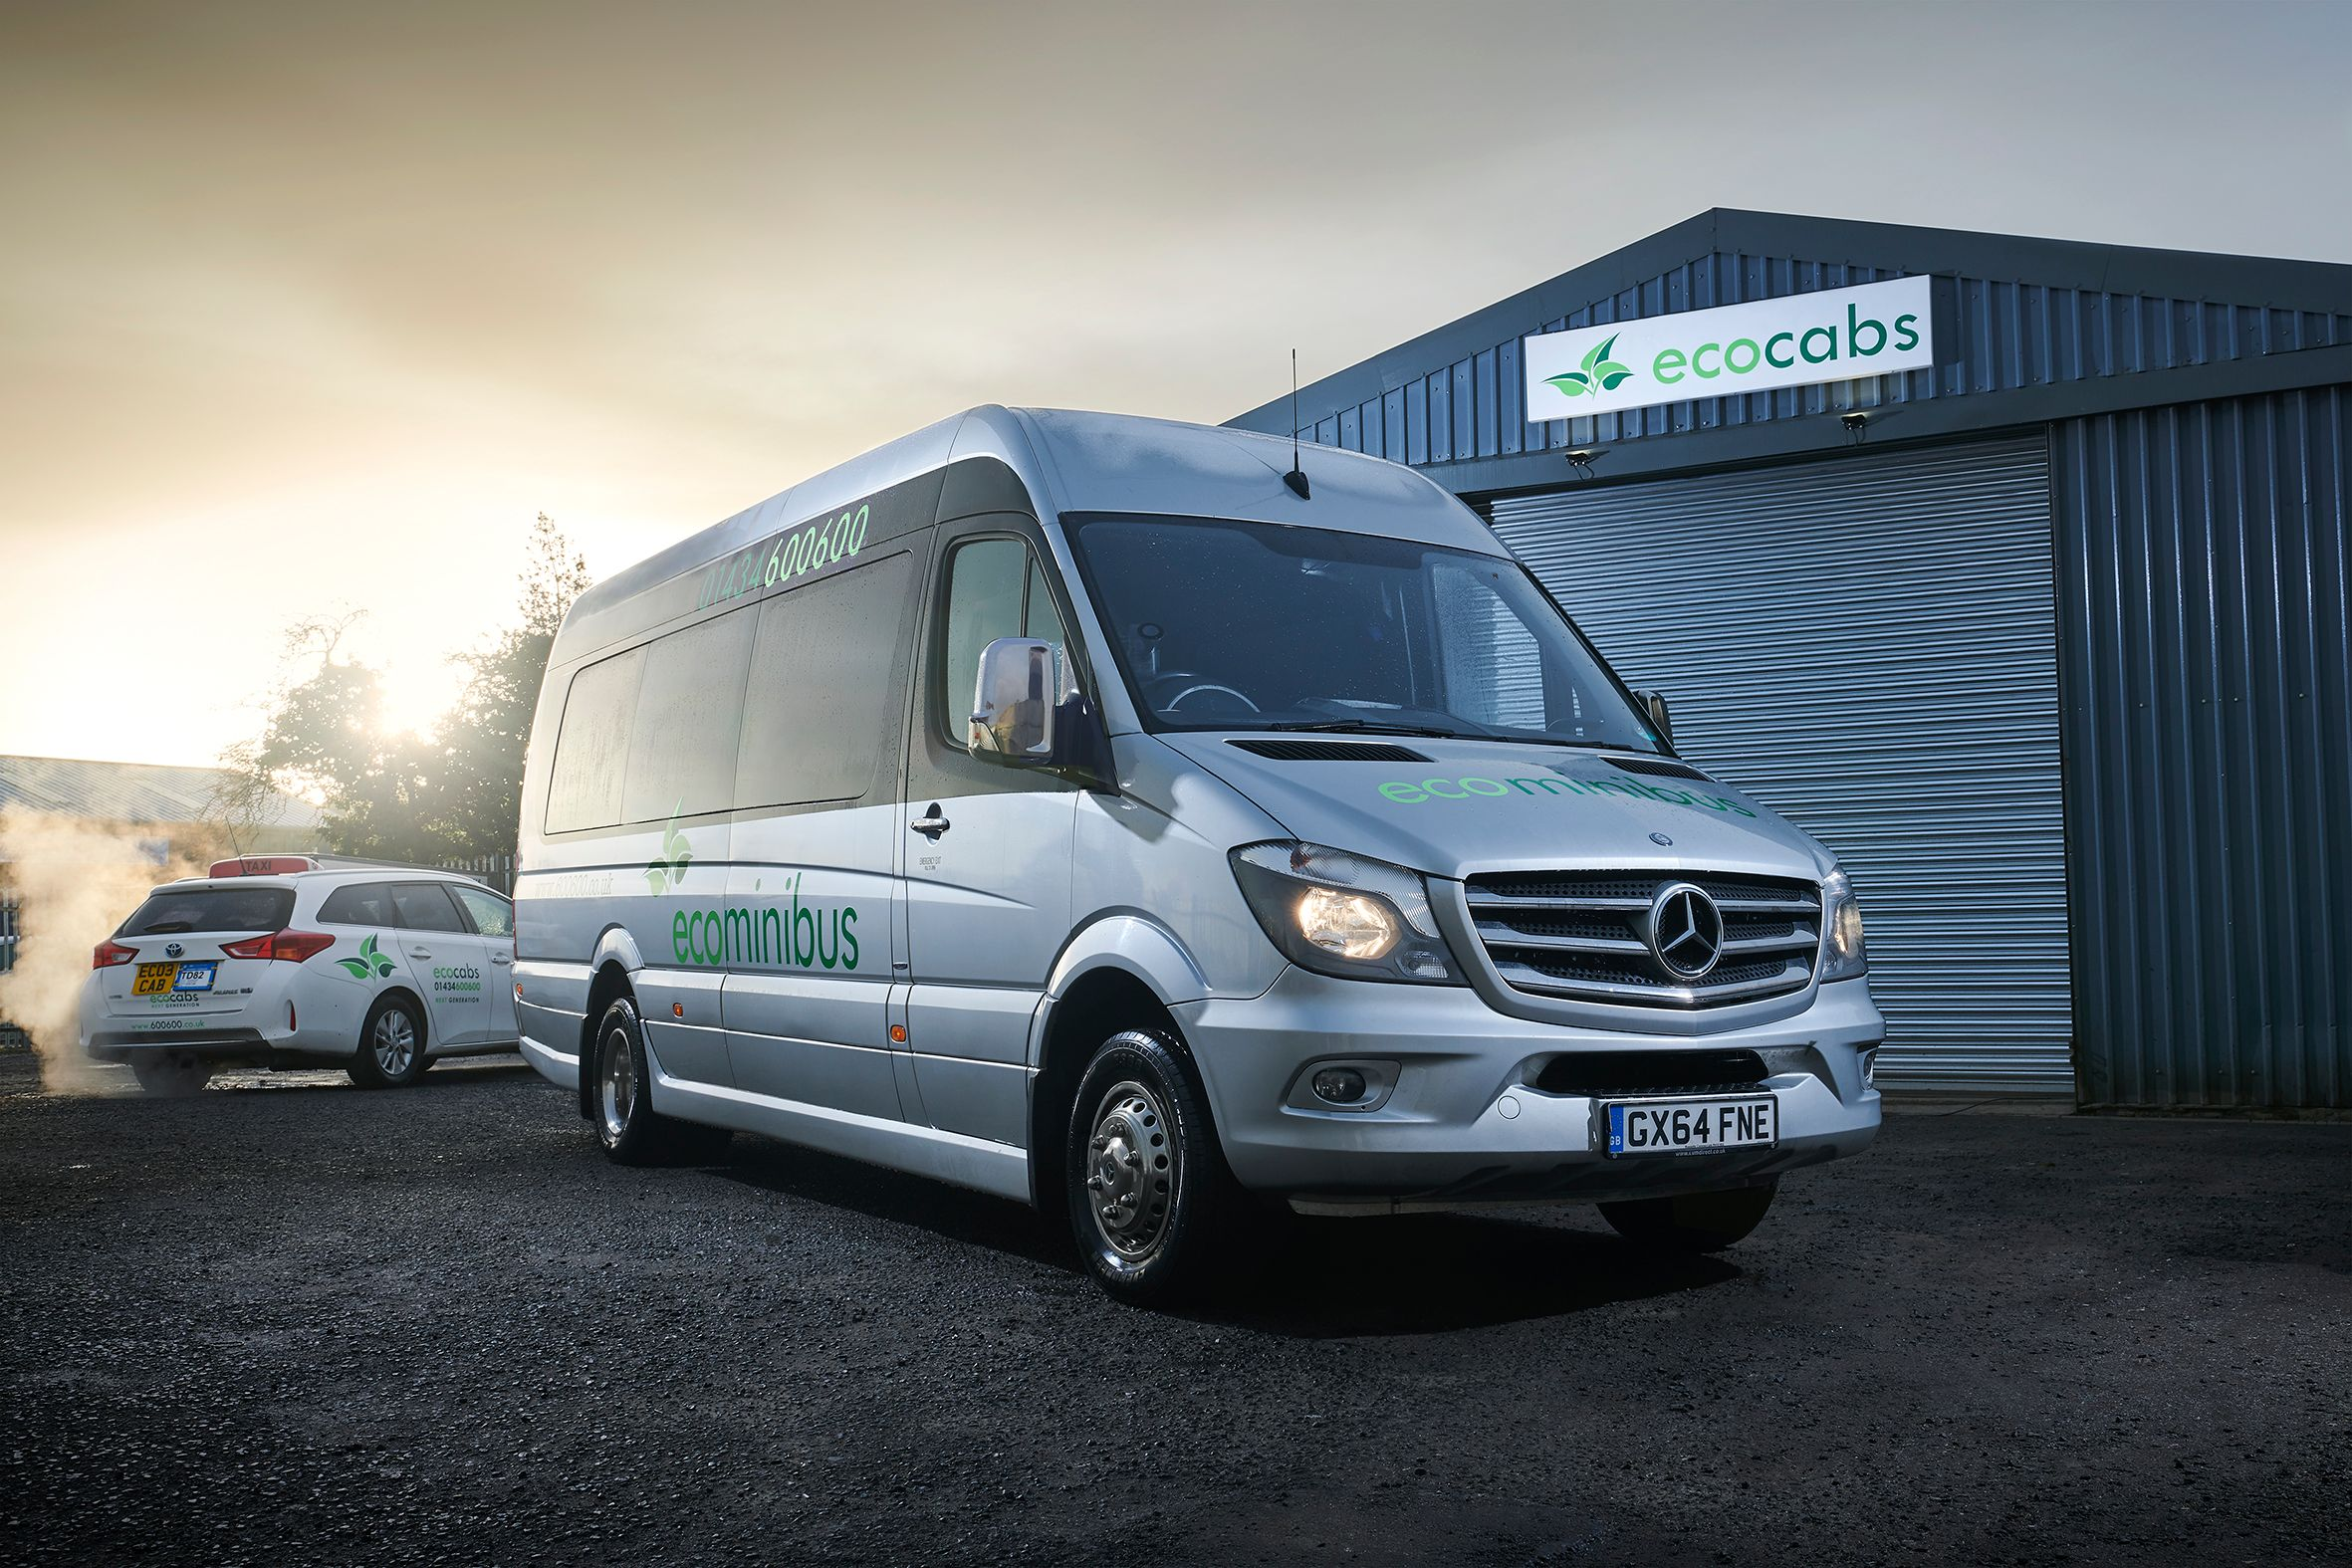 Ecocabs silver people carrier at Hexham Head Office